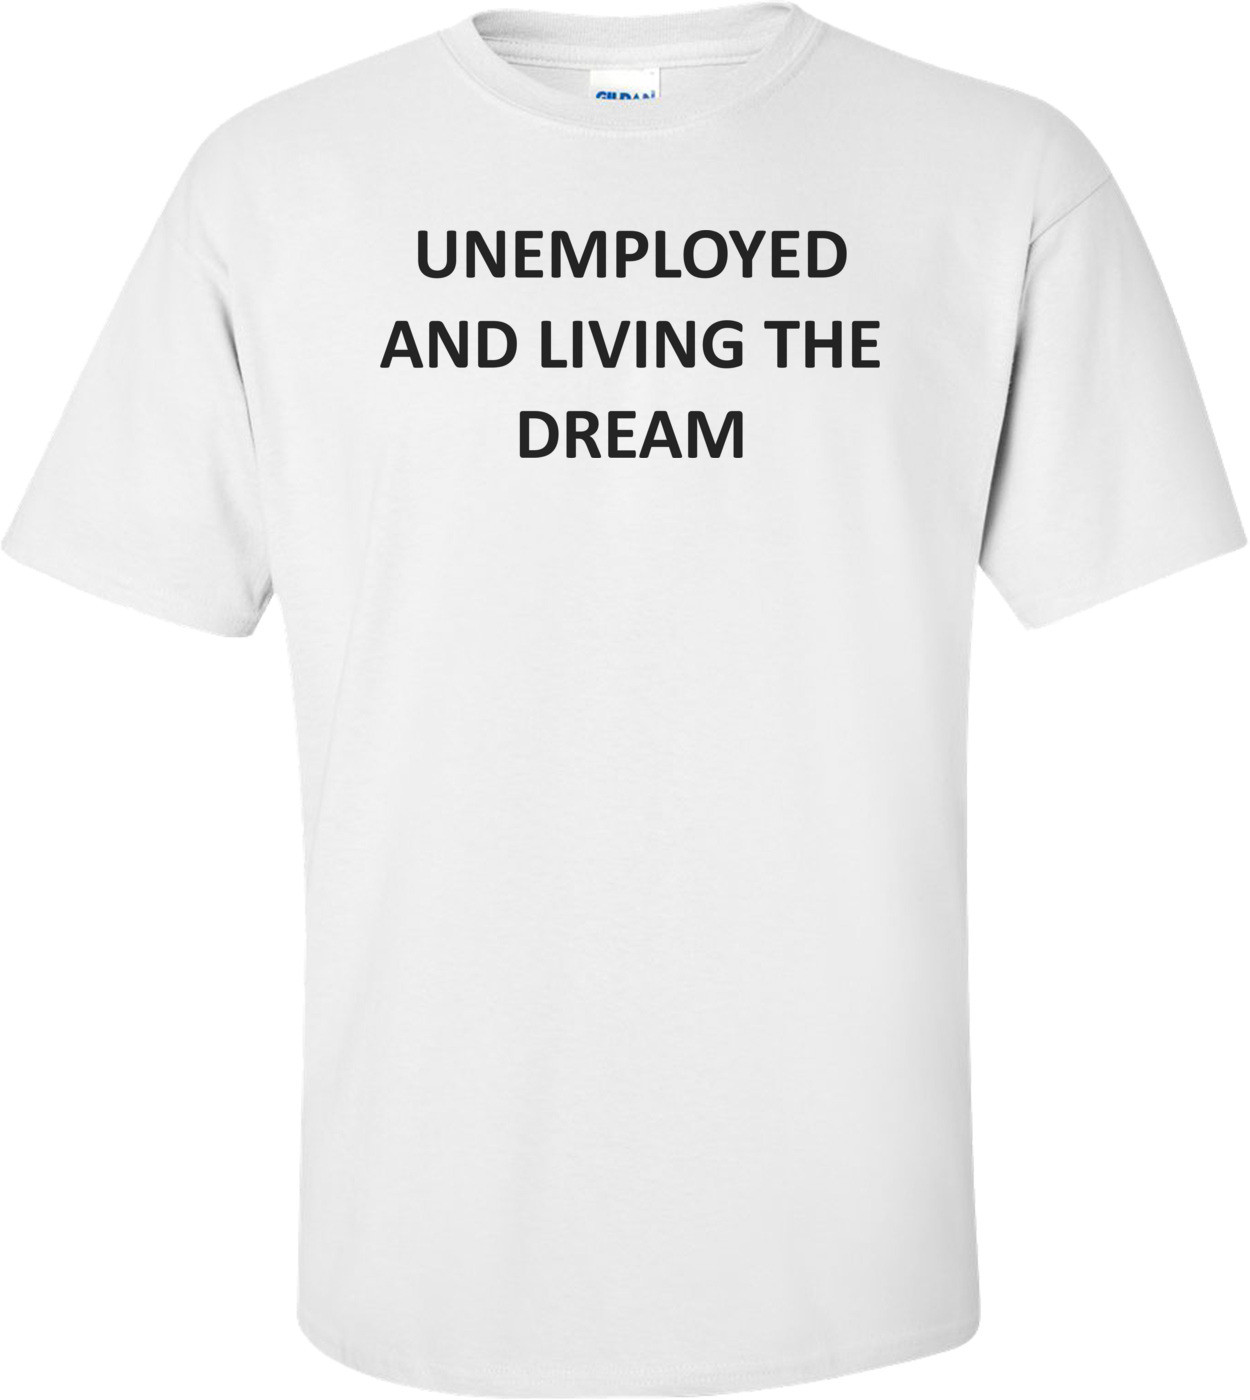 UNEMPLOYED AND LIVING THE DREAM Shirt